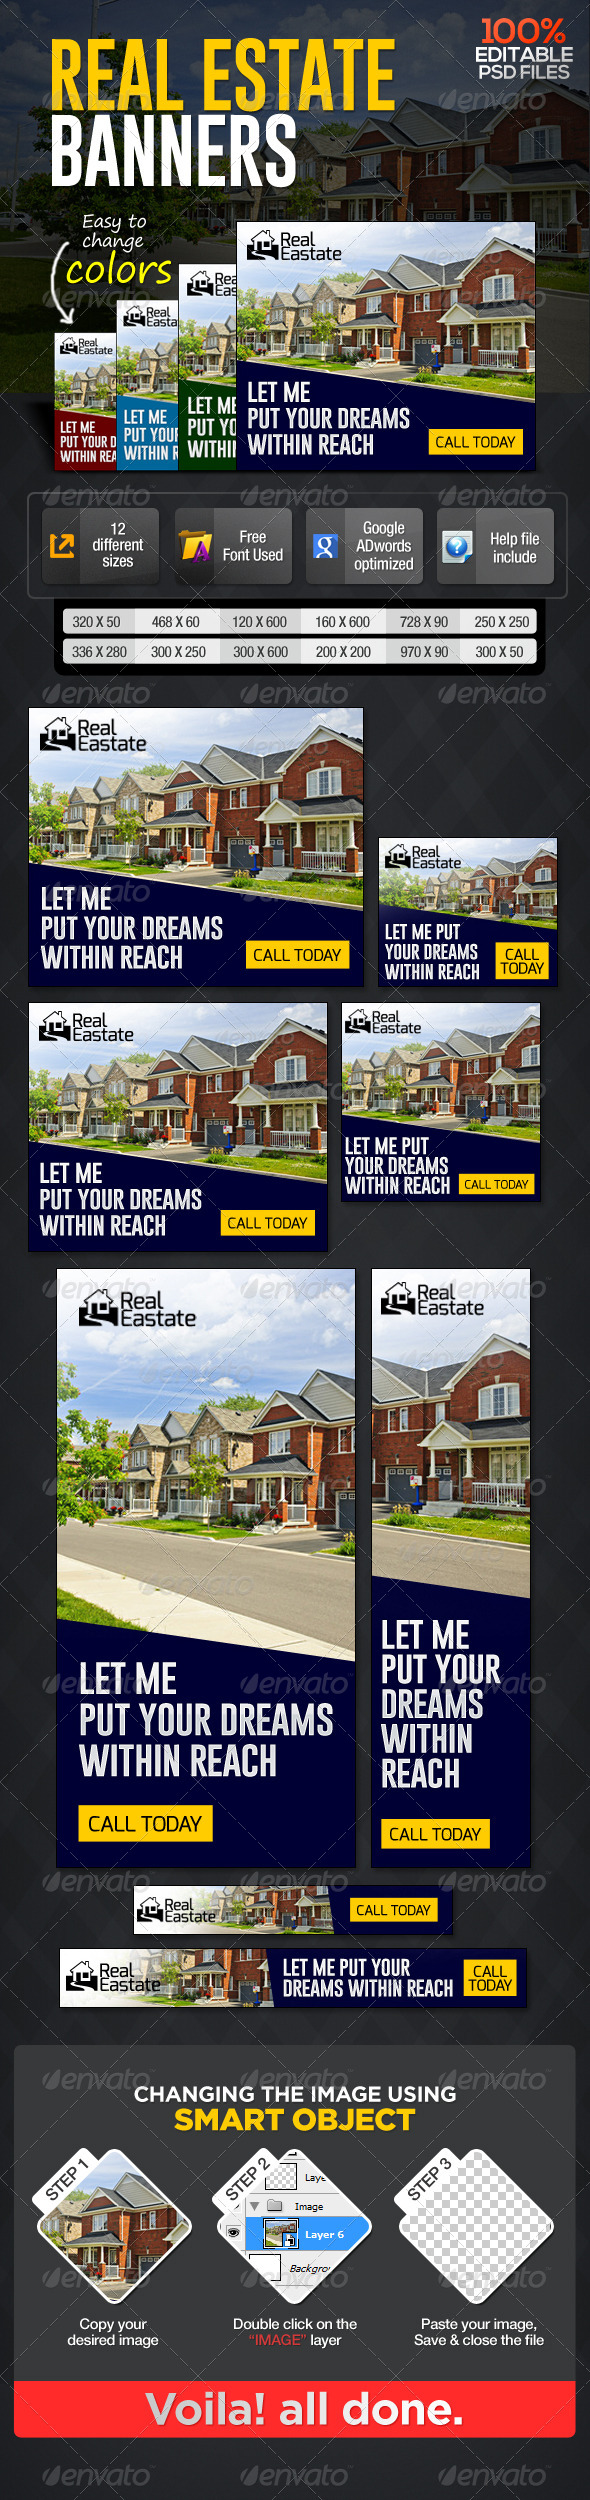 GraphicRiver Real Estate Banners 6996921